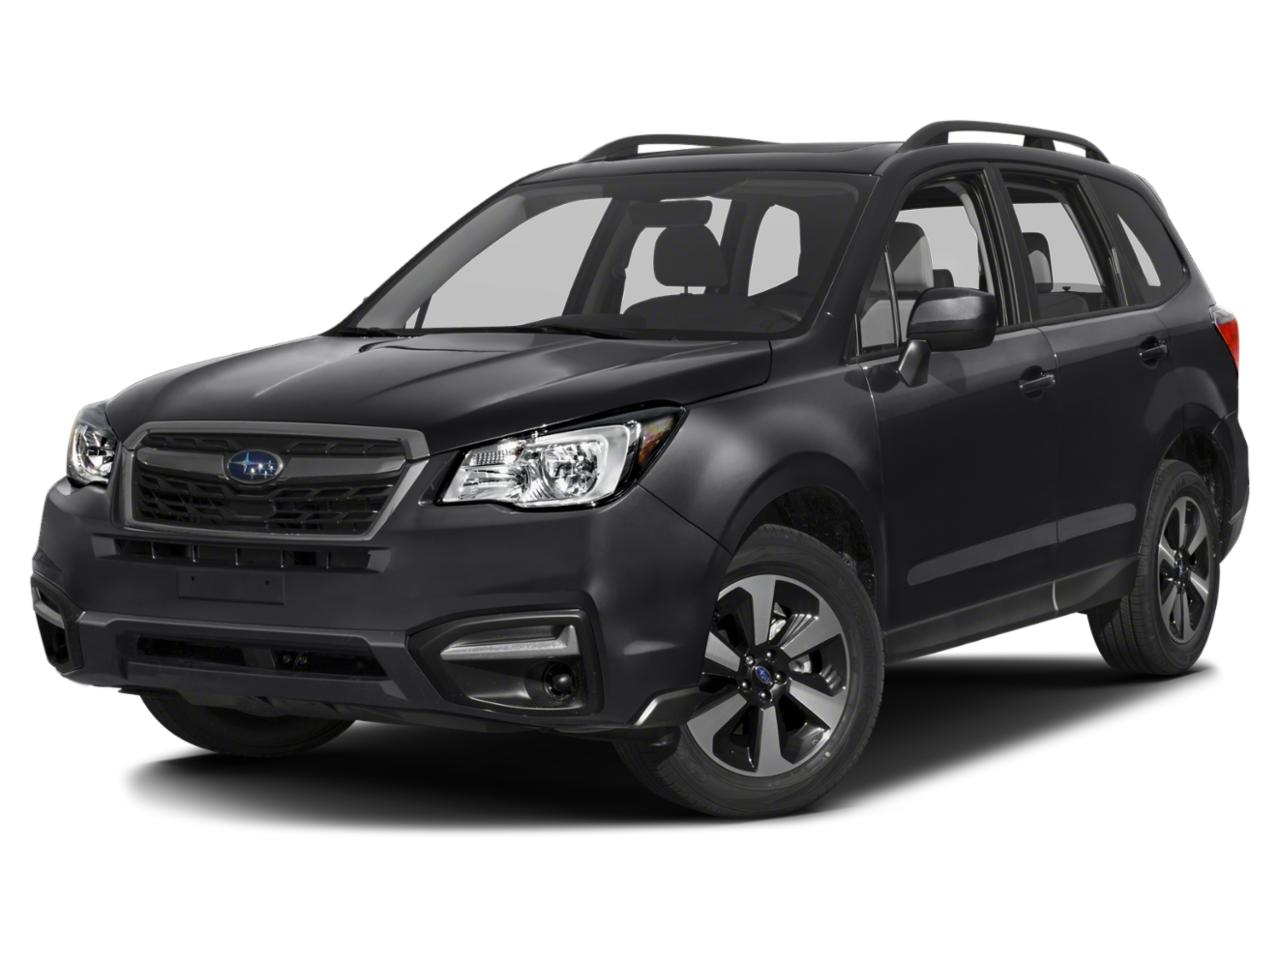 2018 Subaru Forester Vehicle Photo in Spokane, WA 99207